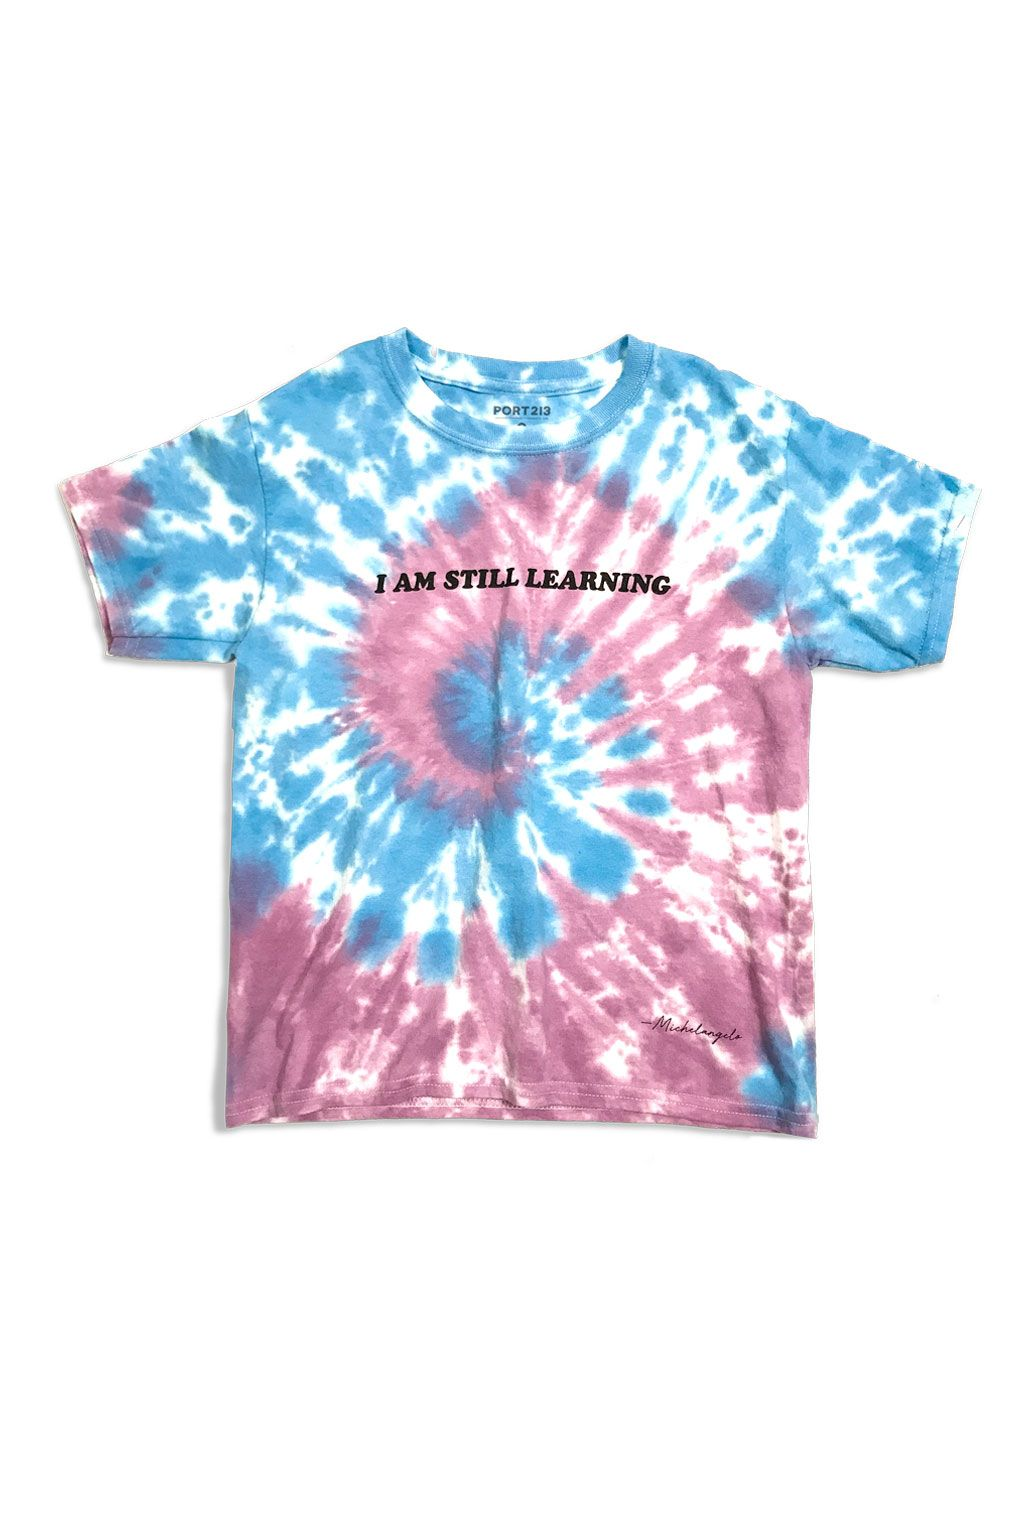 76f5c9122da02 Blue & Pink Tie-Dye T-Shirt | Port 213 kids streetwear fashion | Dye ...